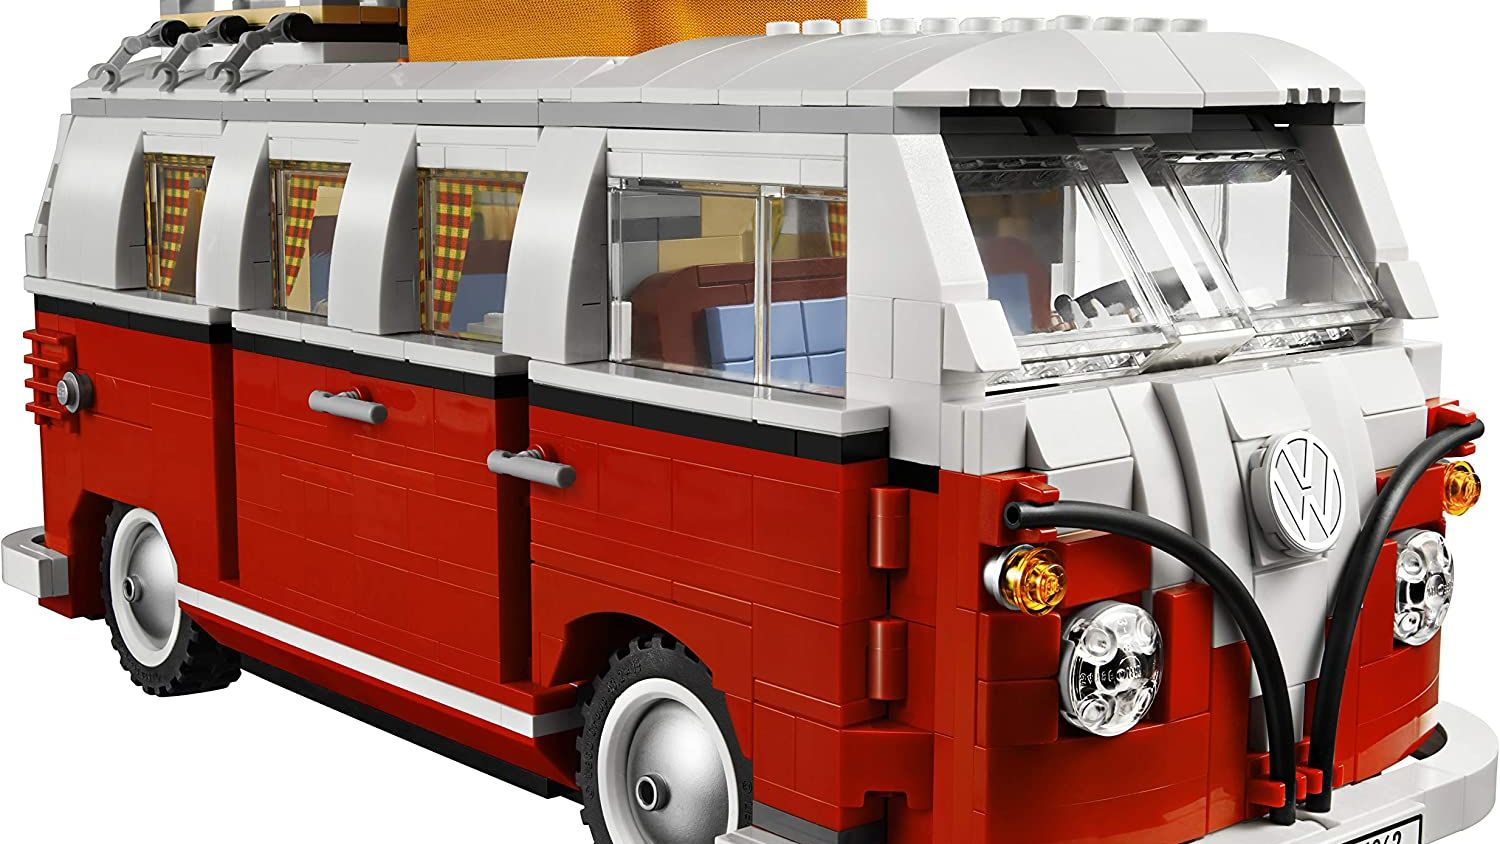 Awesome LEGO Sets For Every Type of Builder